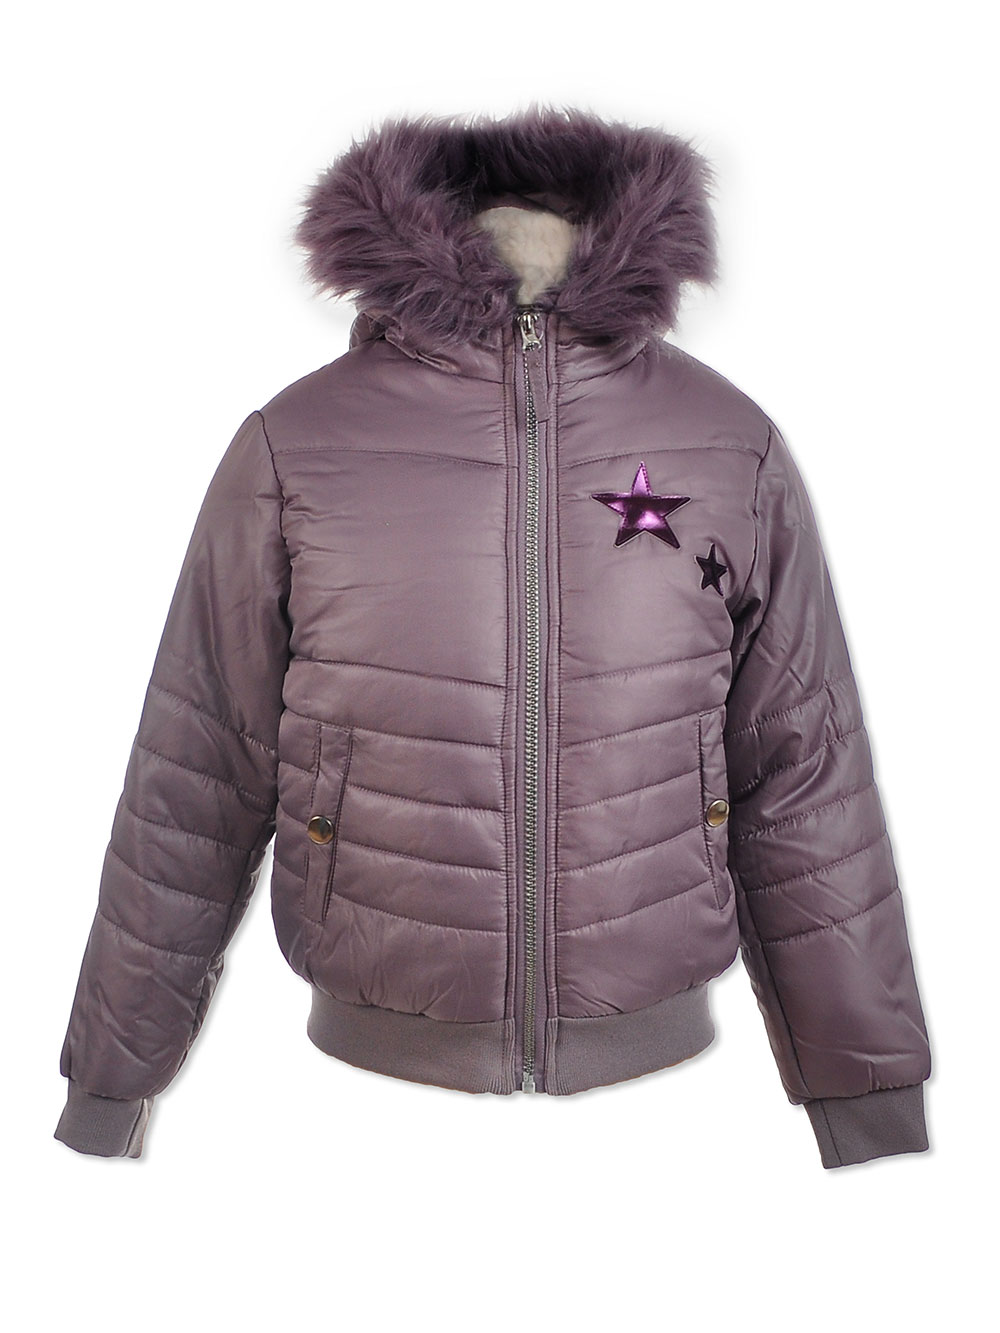 Size m10-12 Jackets Coats for Girls